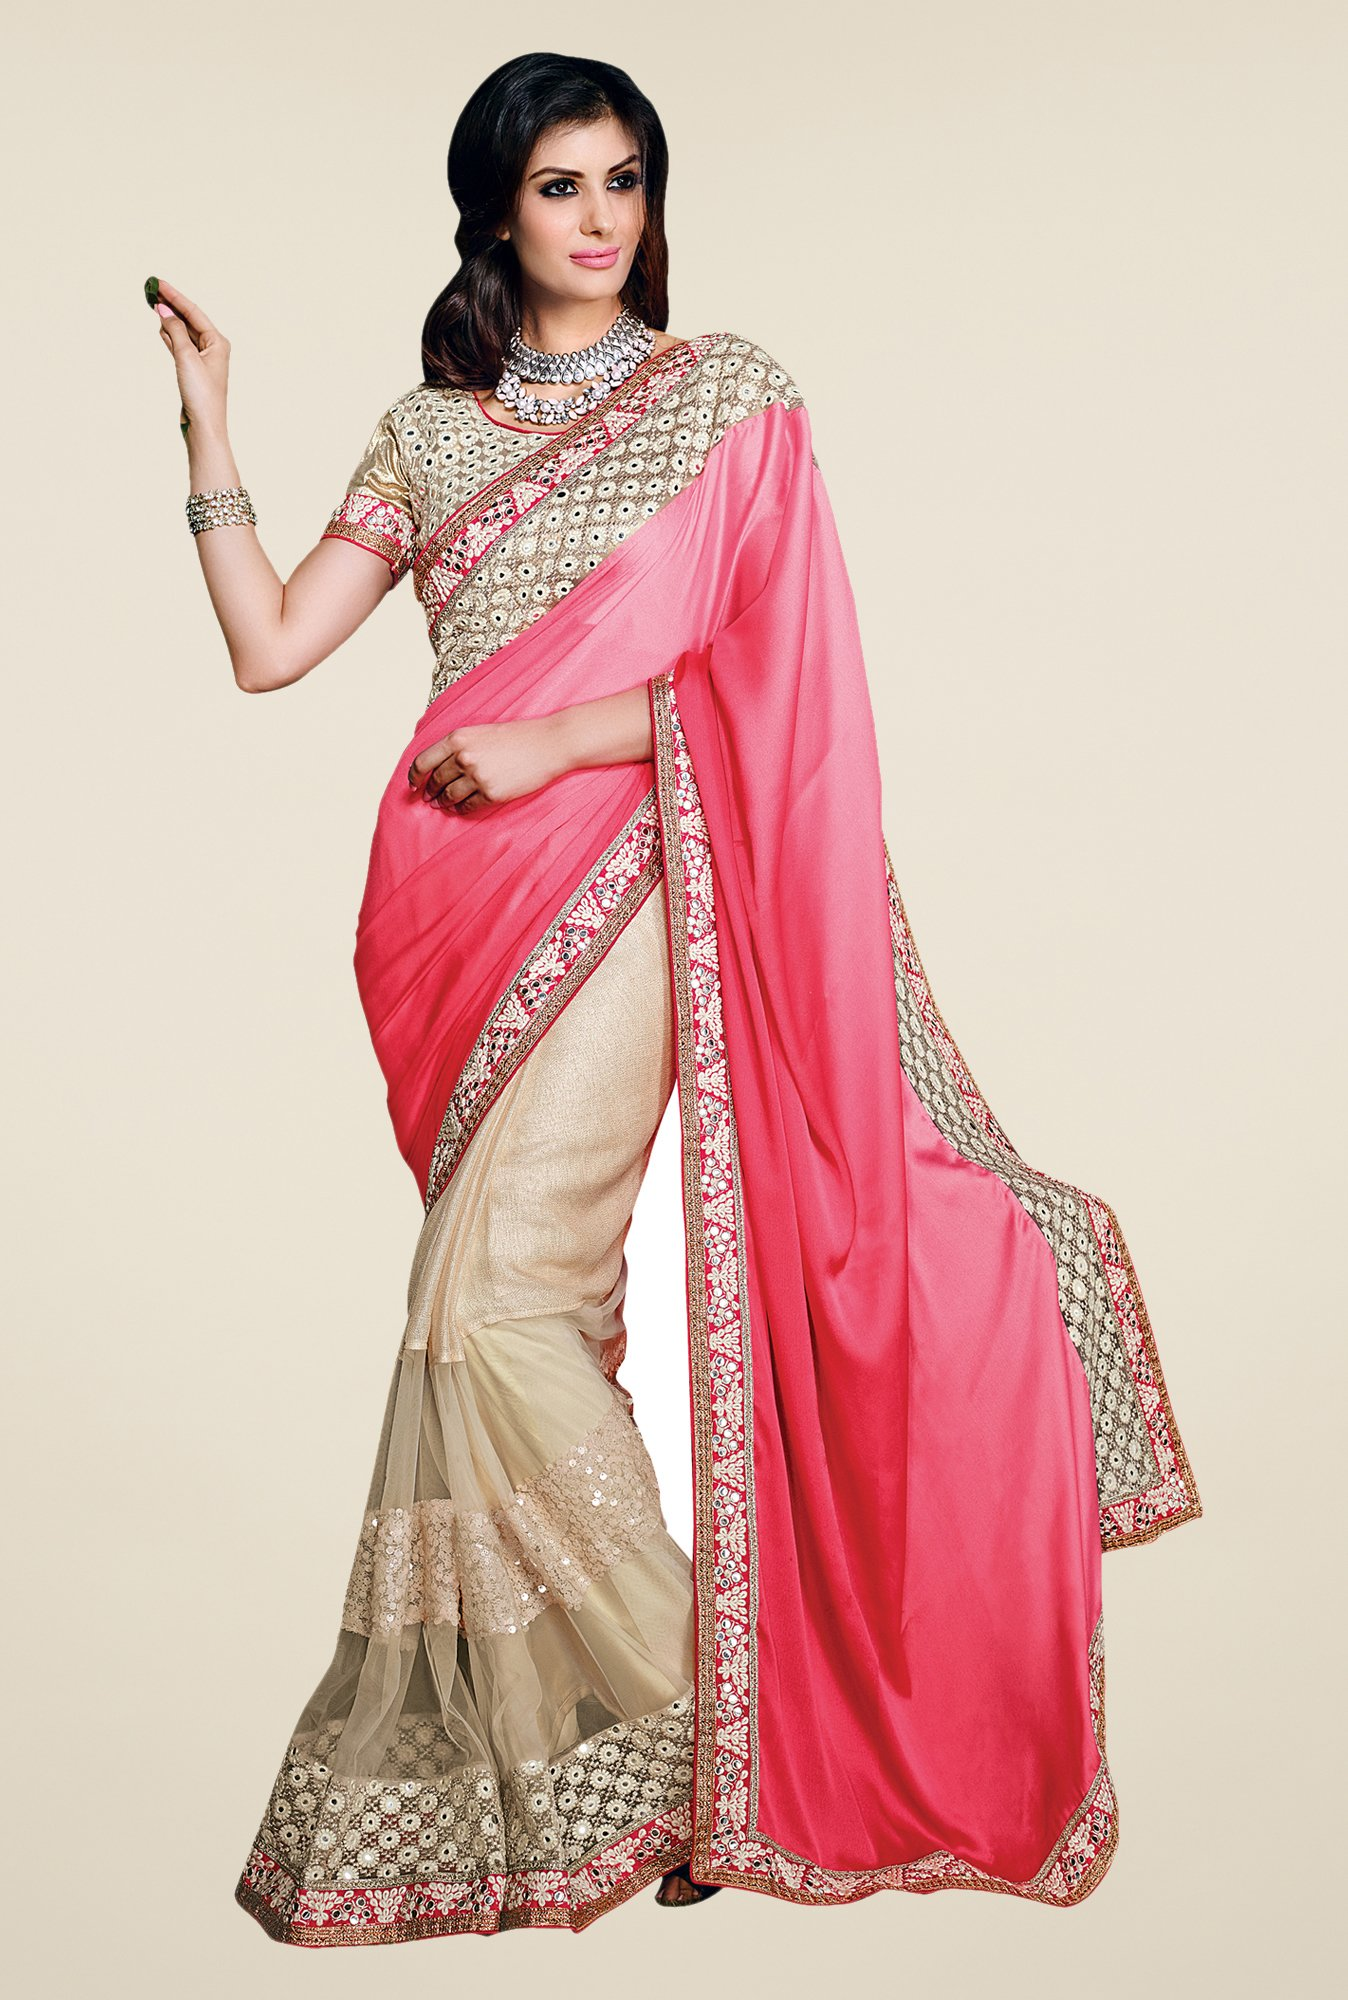 Shonaya Pink & Off White Net Jute Cotton & Georgette Saree